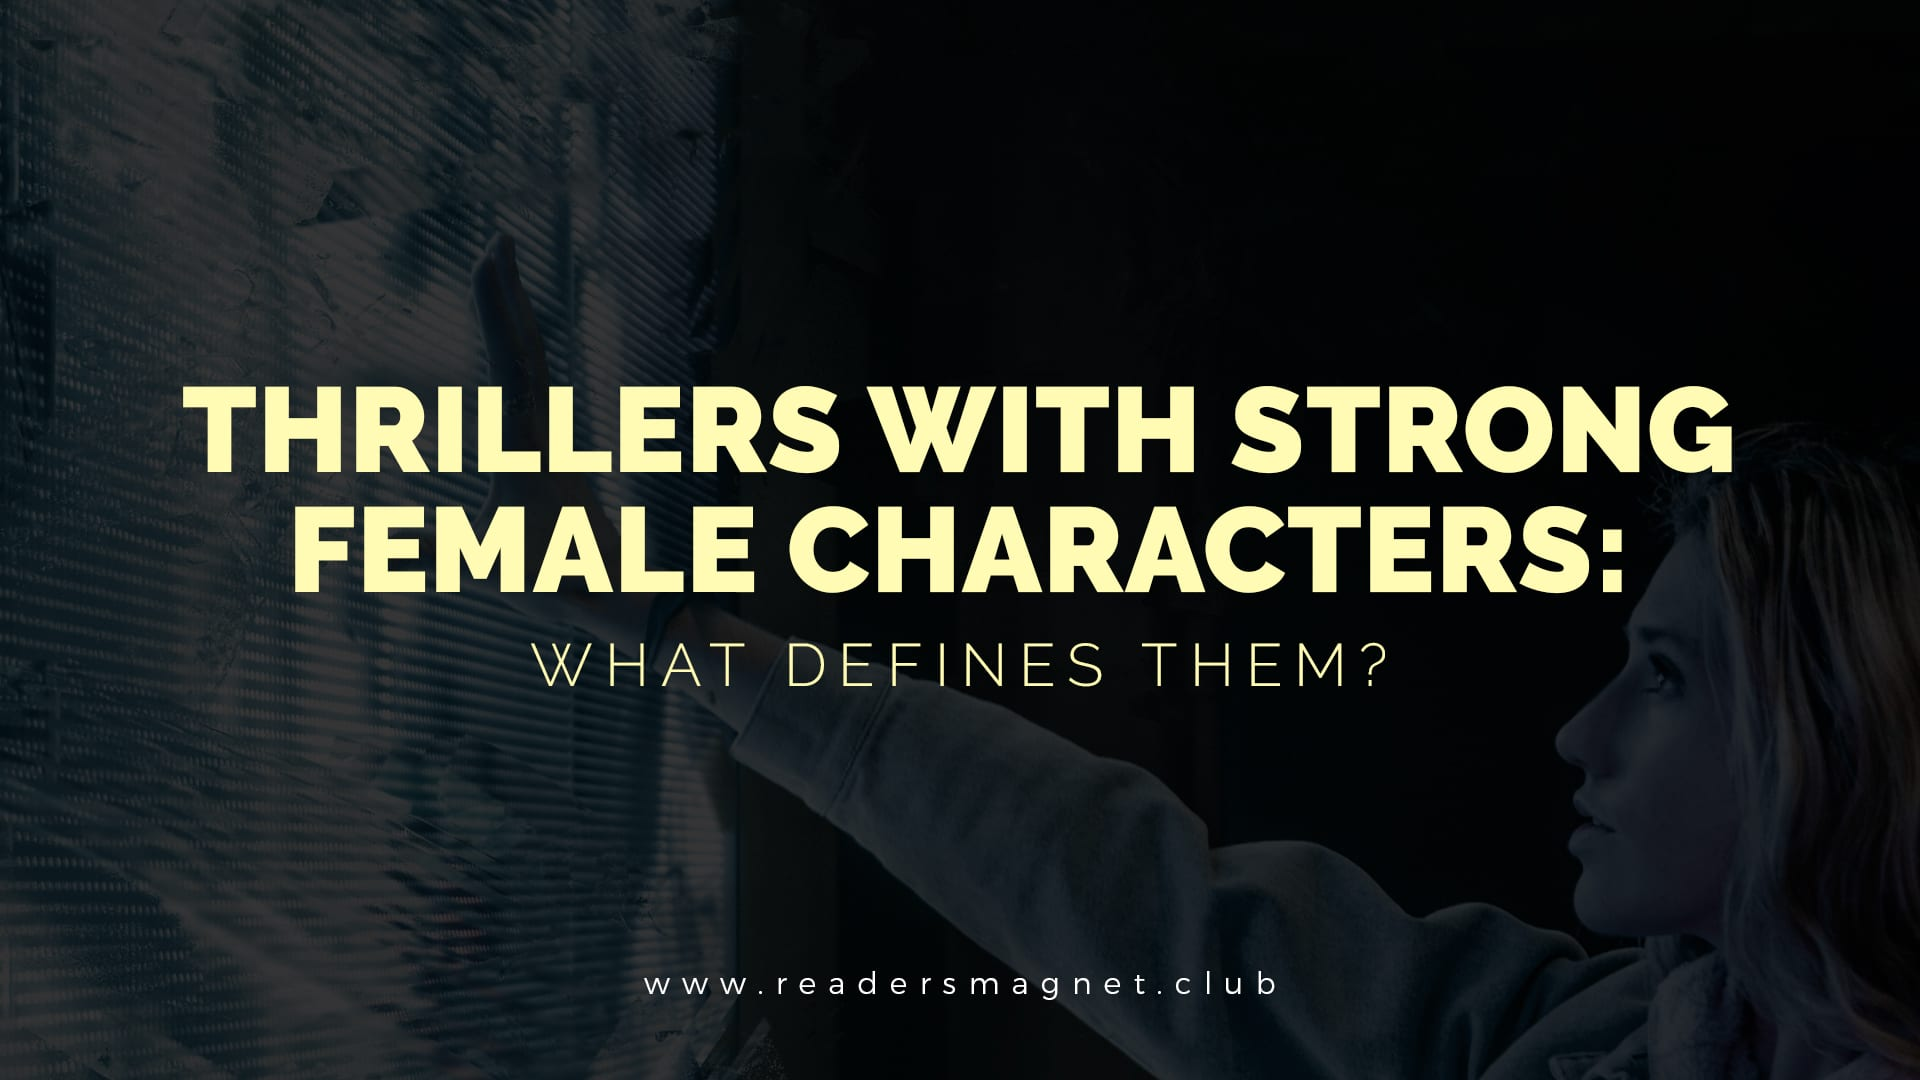 Thrillers With Strong Female Characters banner